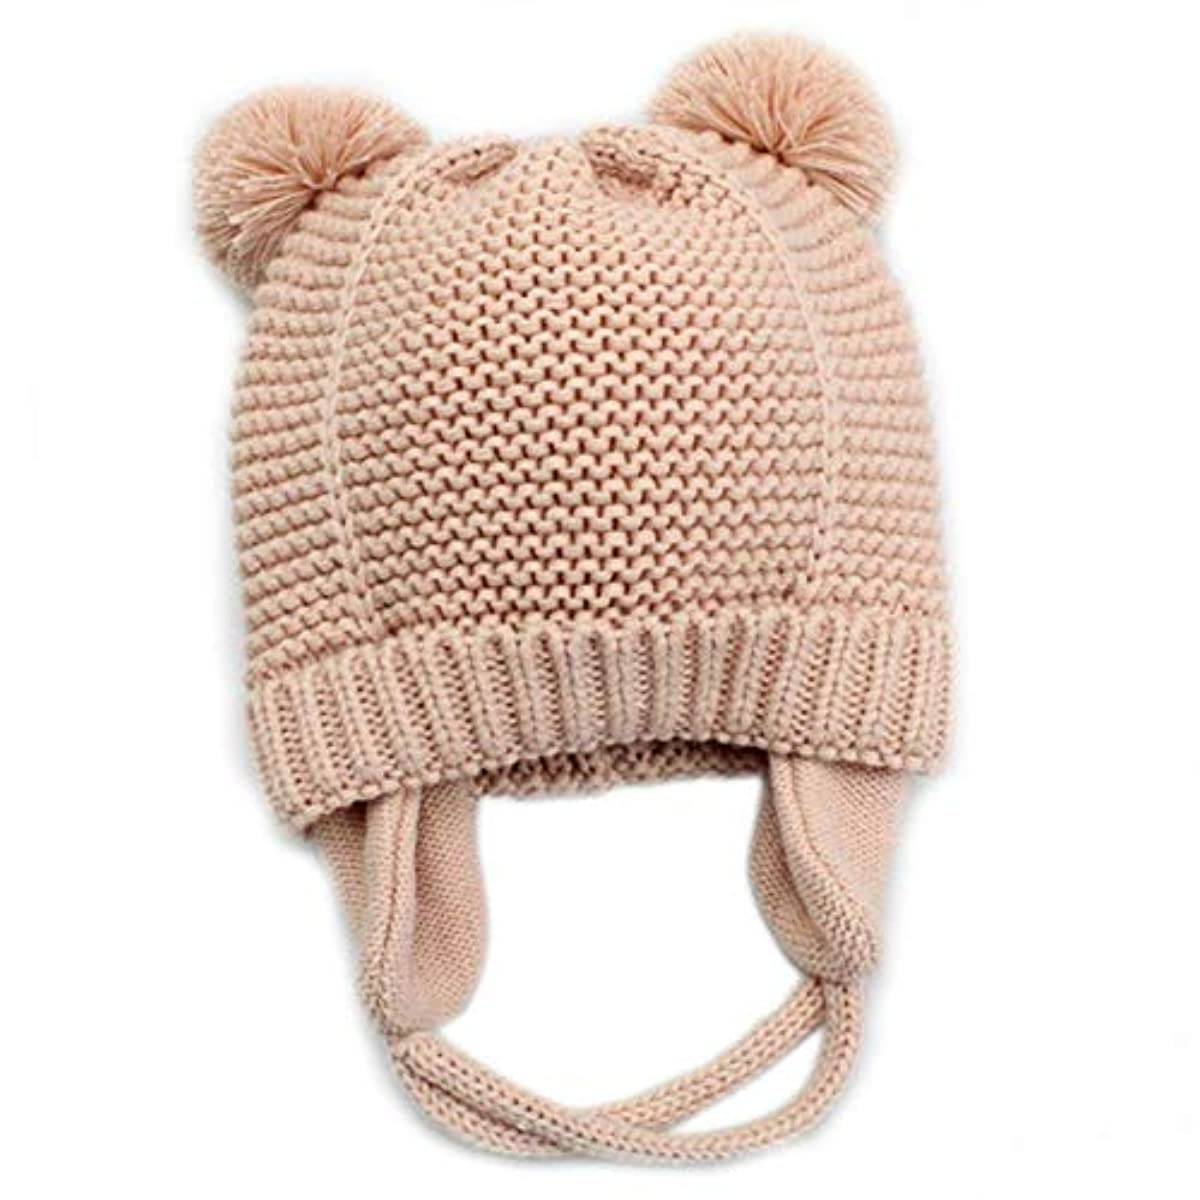 ddb0d866d20 Details about Baby Beanie Earflaps Hat - Infant Toddler Girls Boys Soft  Warm Knit Hat Kids Hat